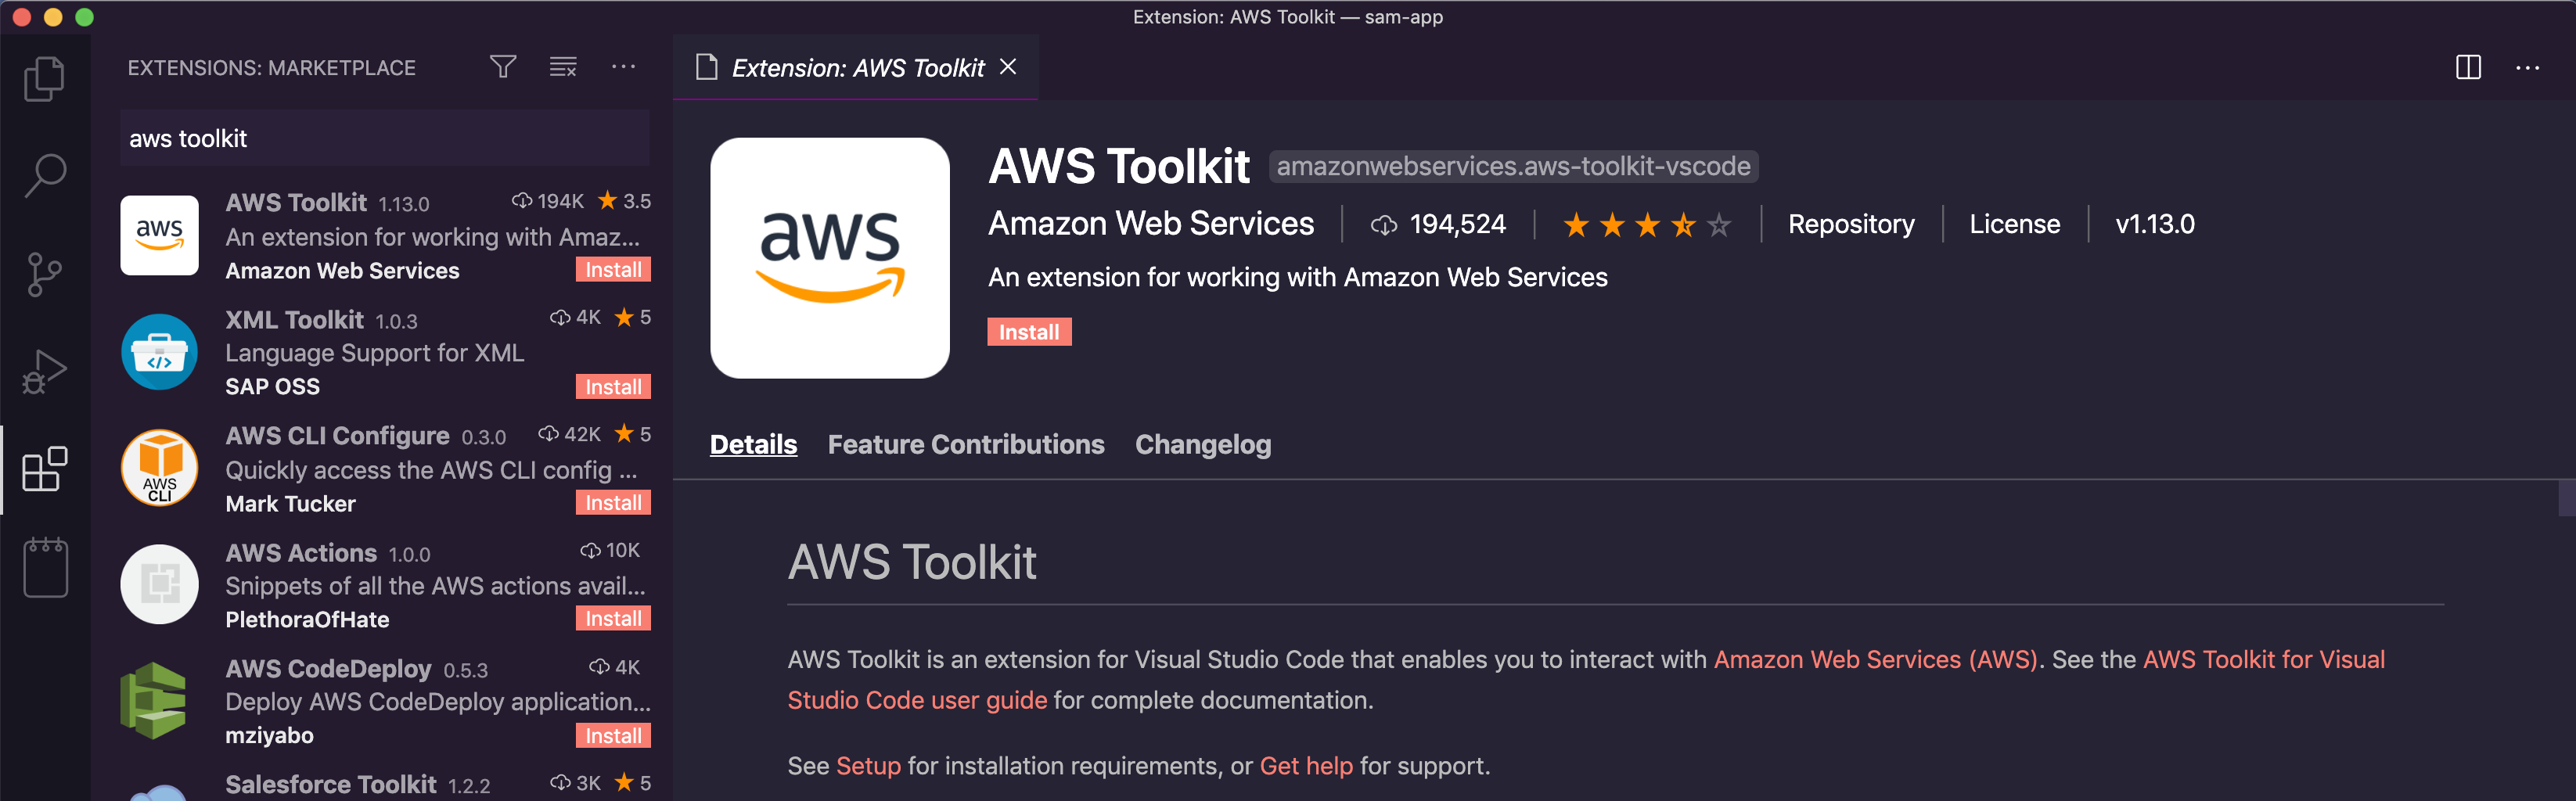 AWS Toolkit extension for Visual Studio Code